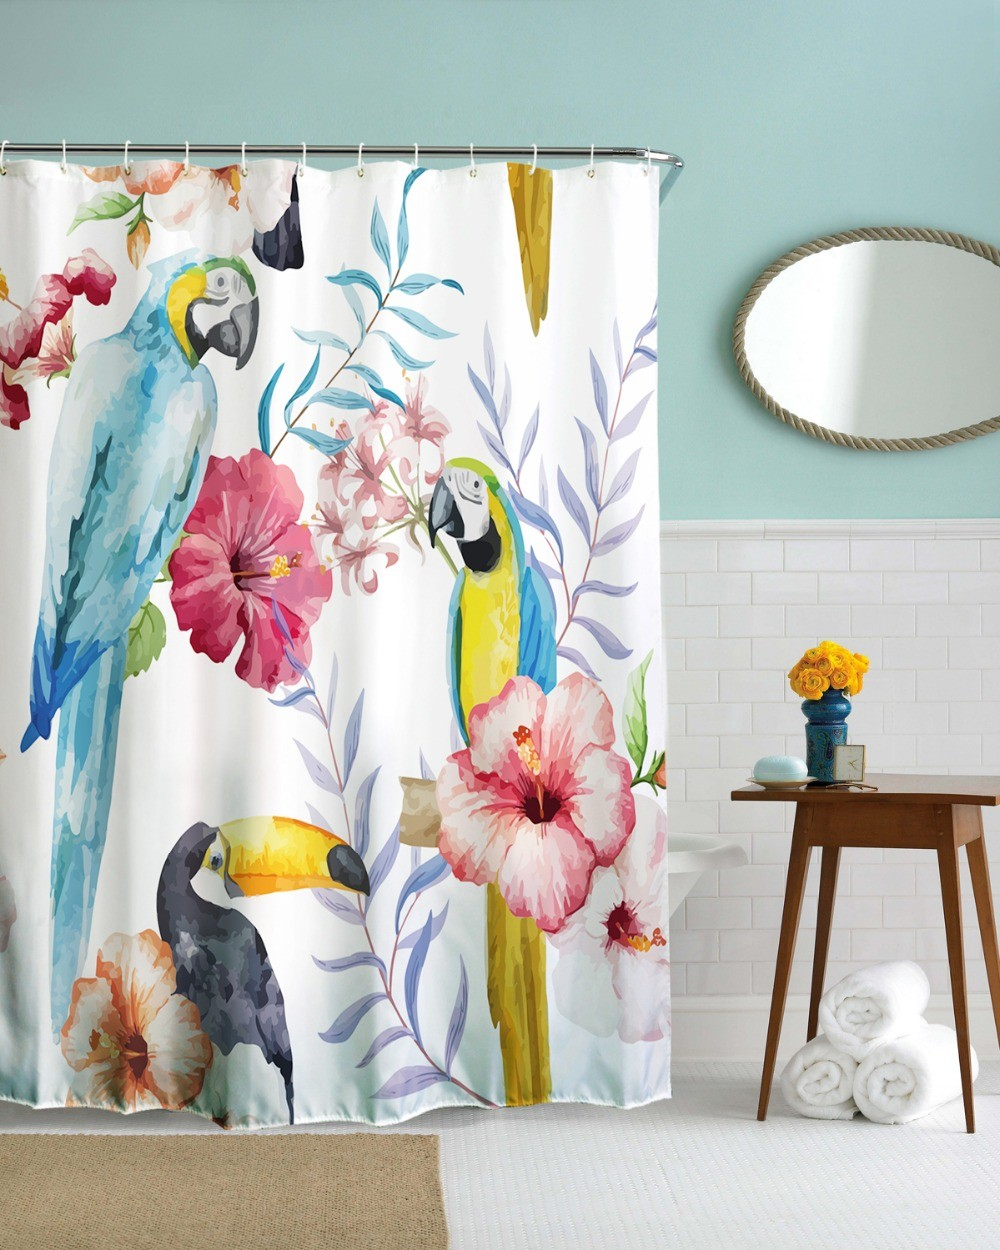 Curtain Fabric Wholesale Wholesale 3d Novel Parrot Flower Waterproof Shower Curtain Fabric Polyester Bathroom Curtain Bath Curtain Cartoon Cortinas De Bano Bird